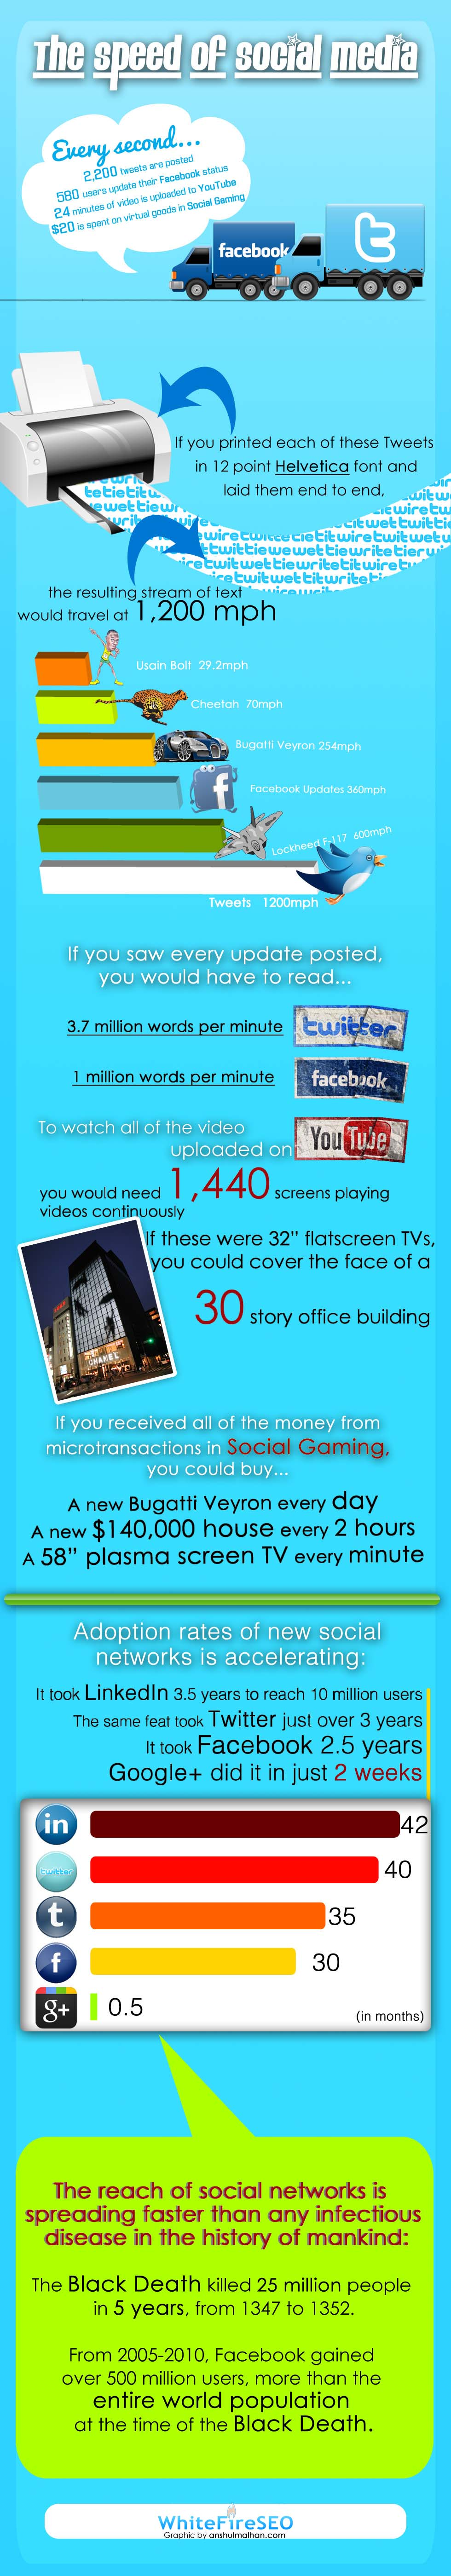 infographic about the the speed of social media